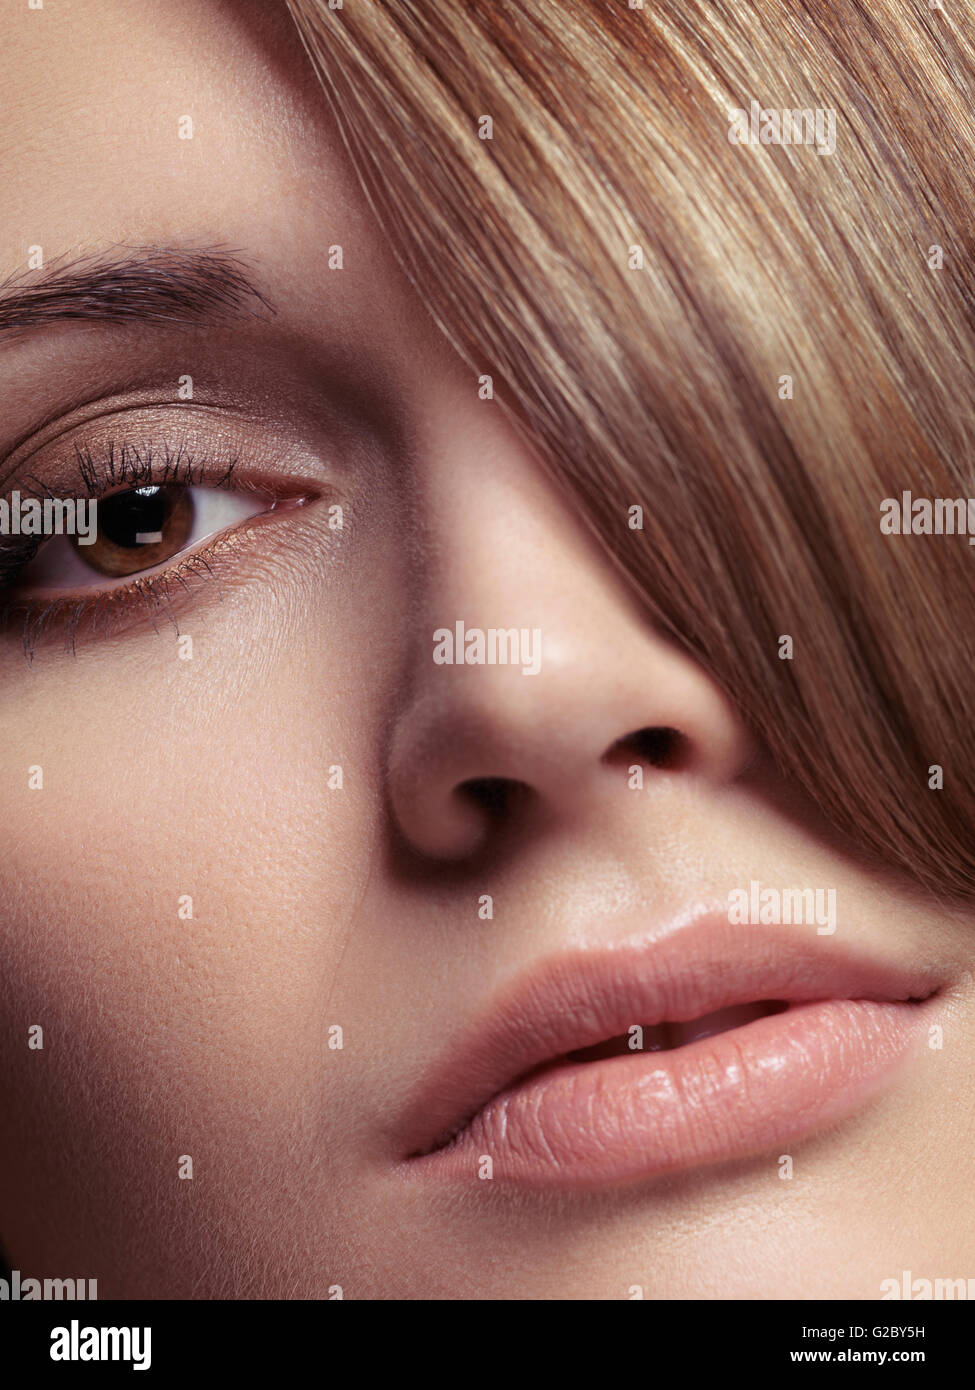 Portrait of a woman, bangs covering one eye - Stock Image